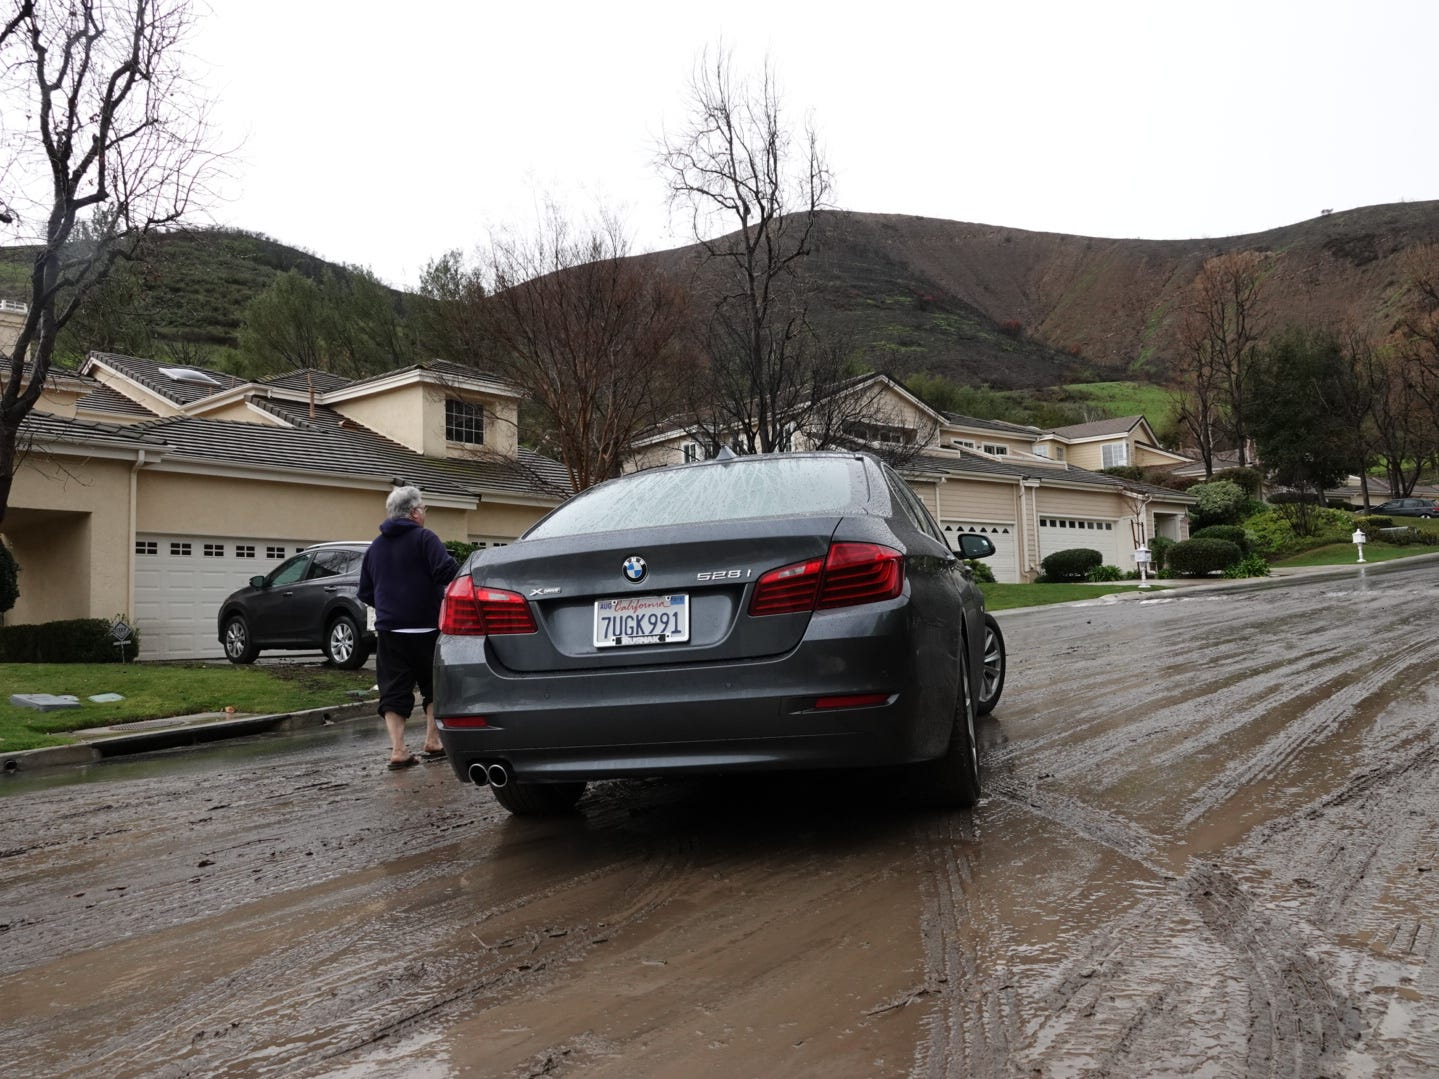 Jerry Lax, on foot, speaks with a neighbor driving through mud Saturday on Westview Court in the Westlake Village area as hills burned by the Woolsey Fire loom behind.